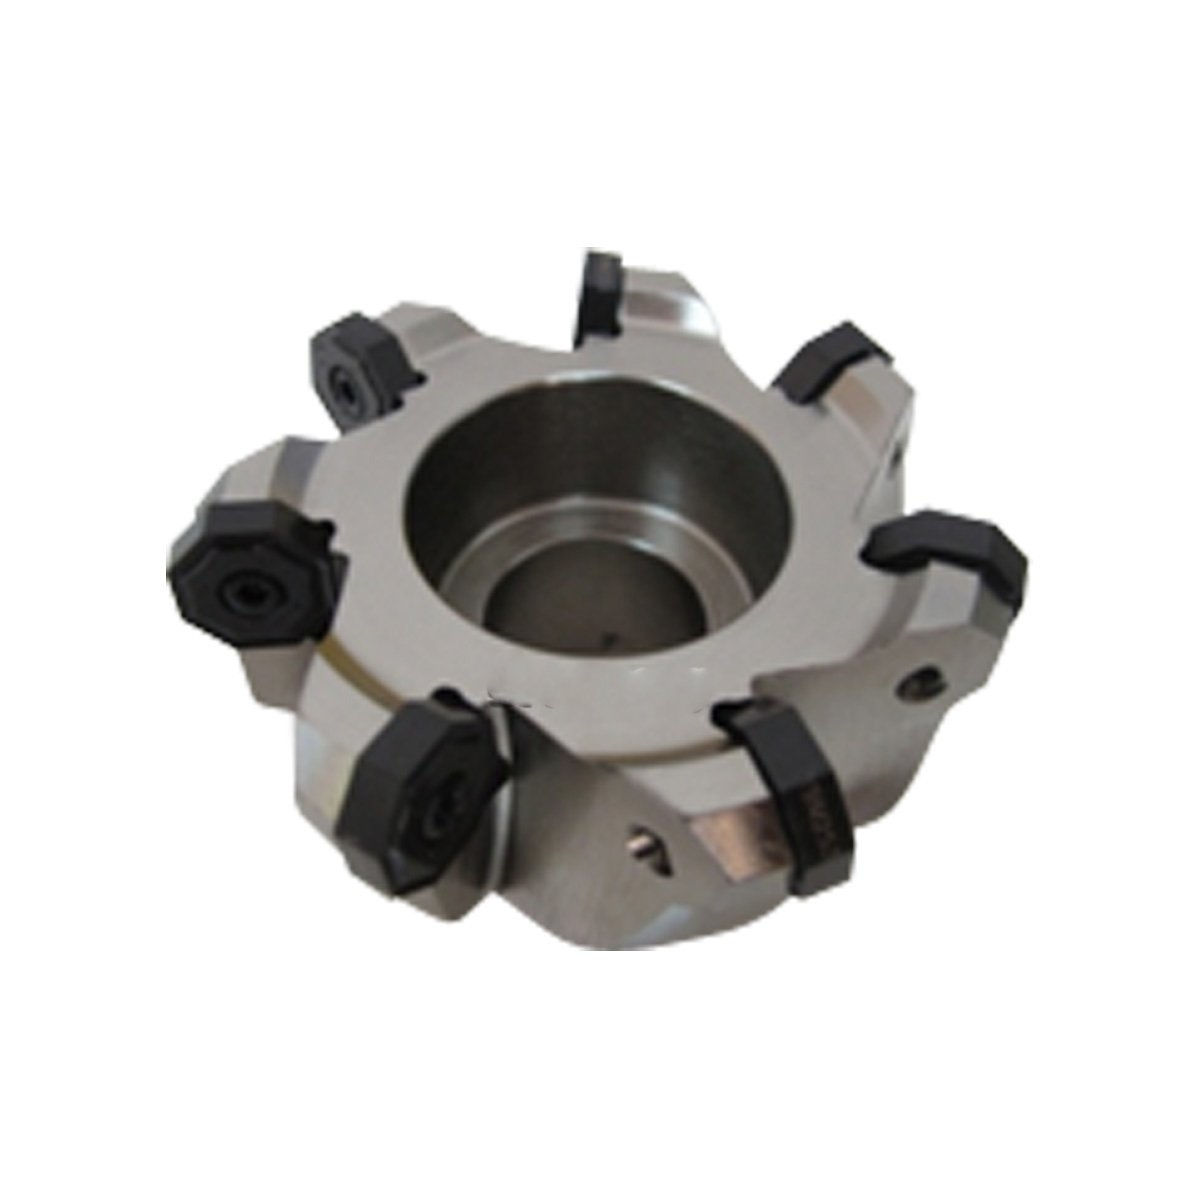 HHIP 2068-4001 4'' x 1-1/2'' Bore 45 Degree Octagon 7 Insert Index able Face Mill, 2-1/2'' OAL